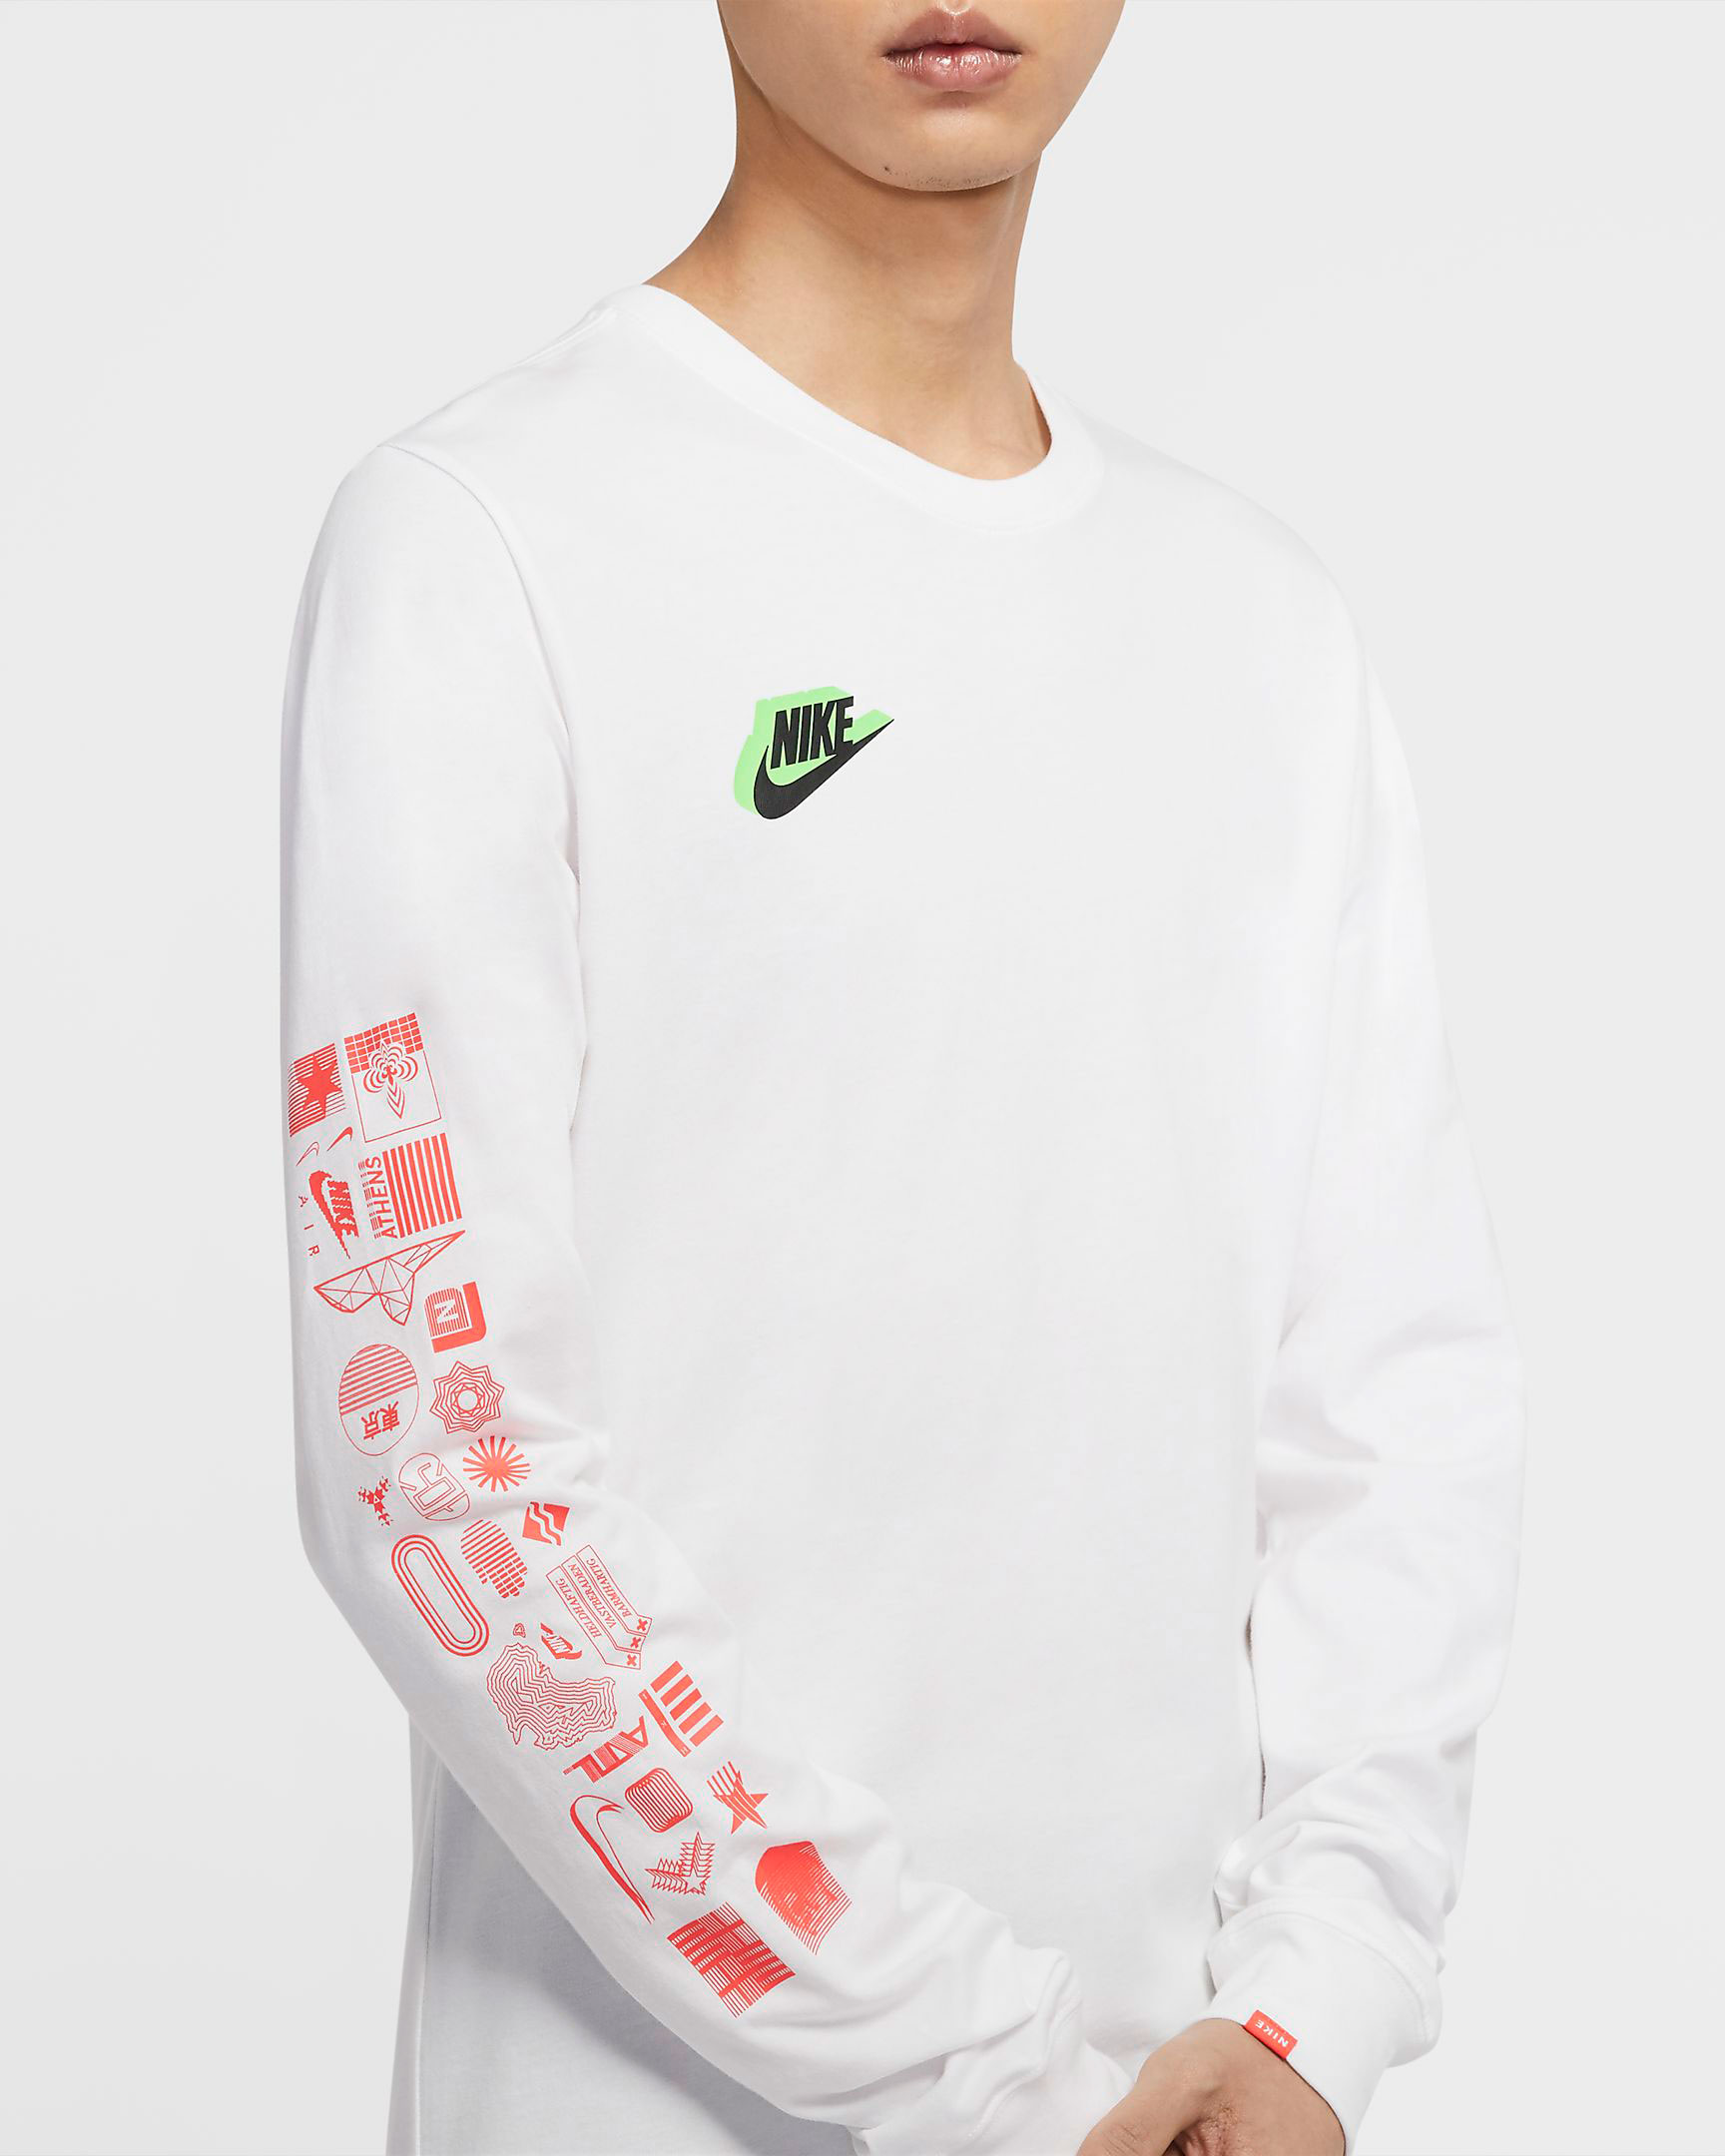 nike-worldwide-long-sleeve-shirt-white-3